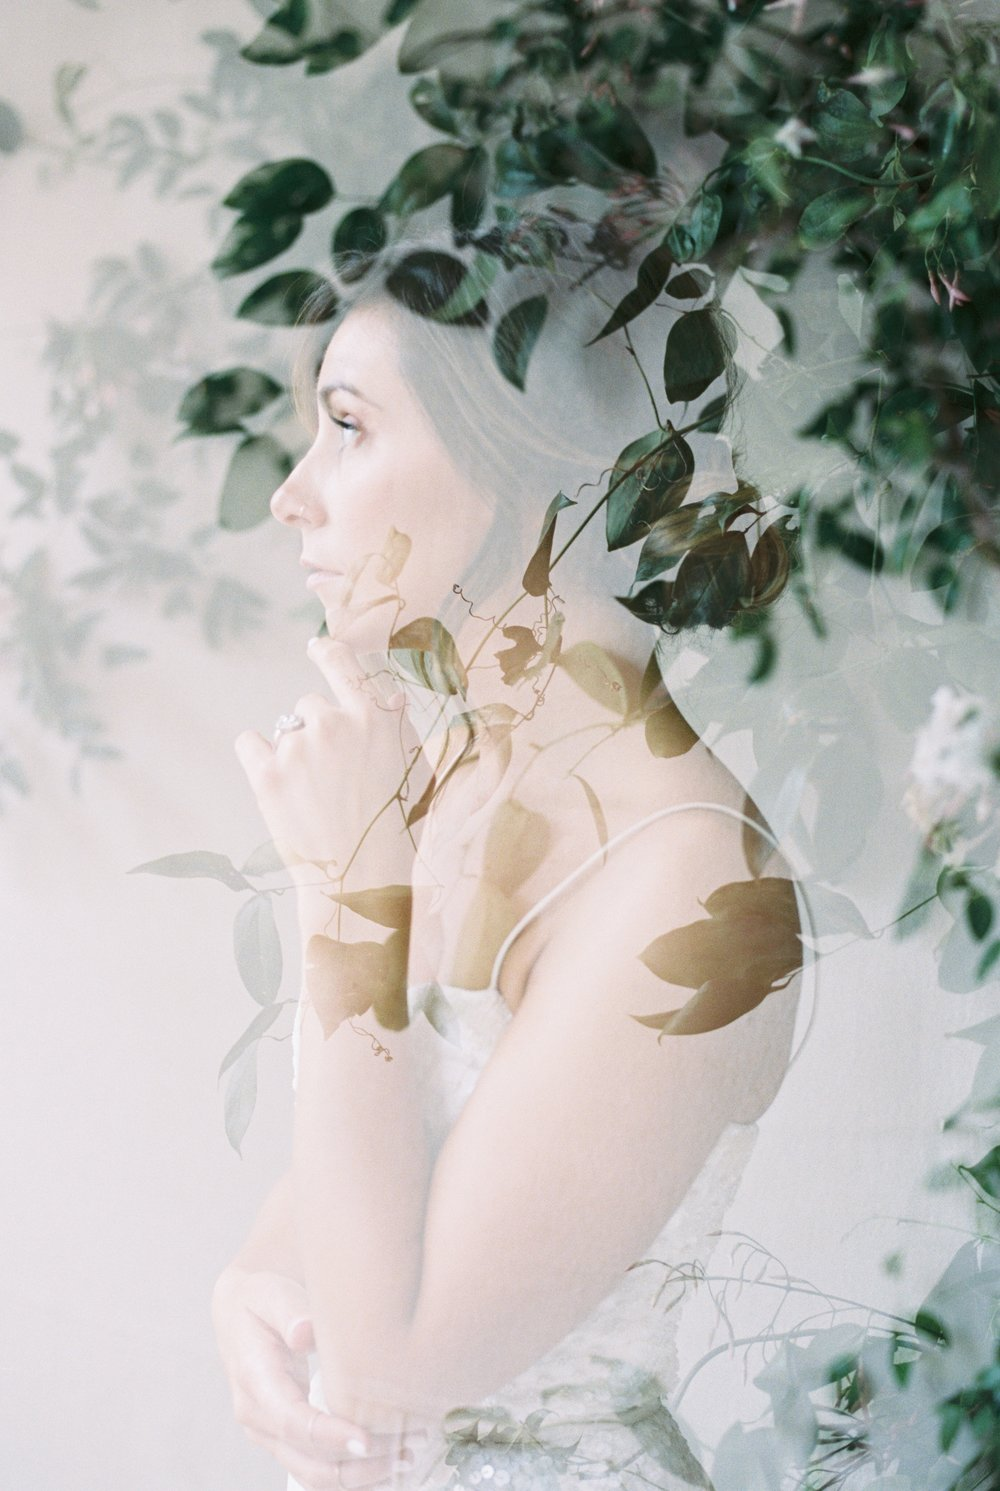 Caroline Koehler Photography's double exposure